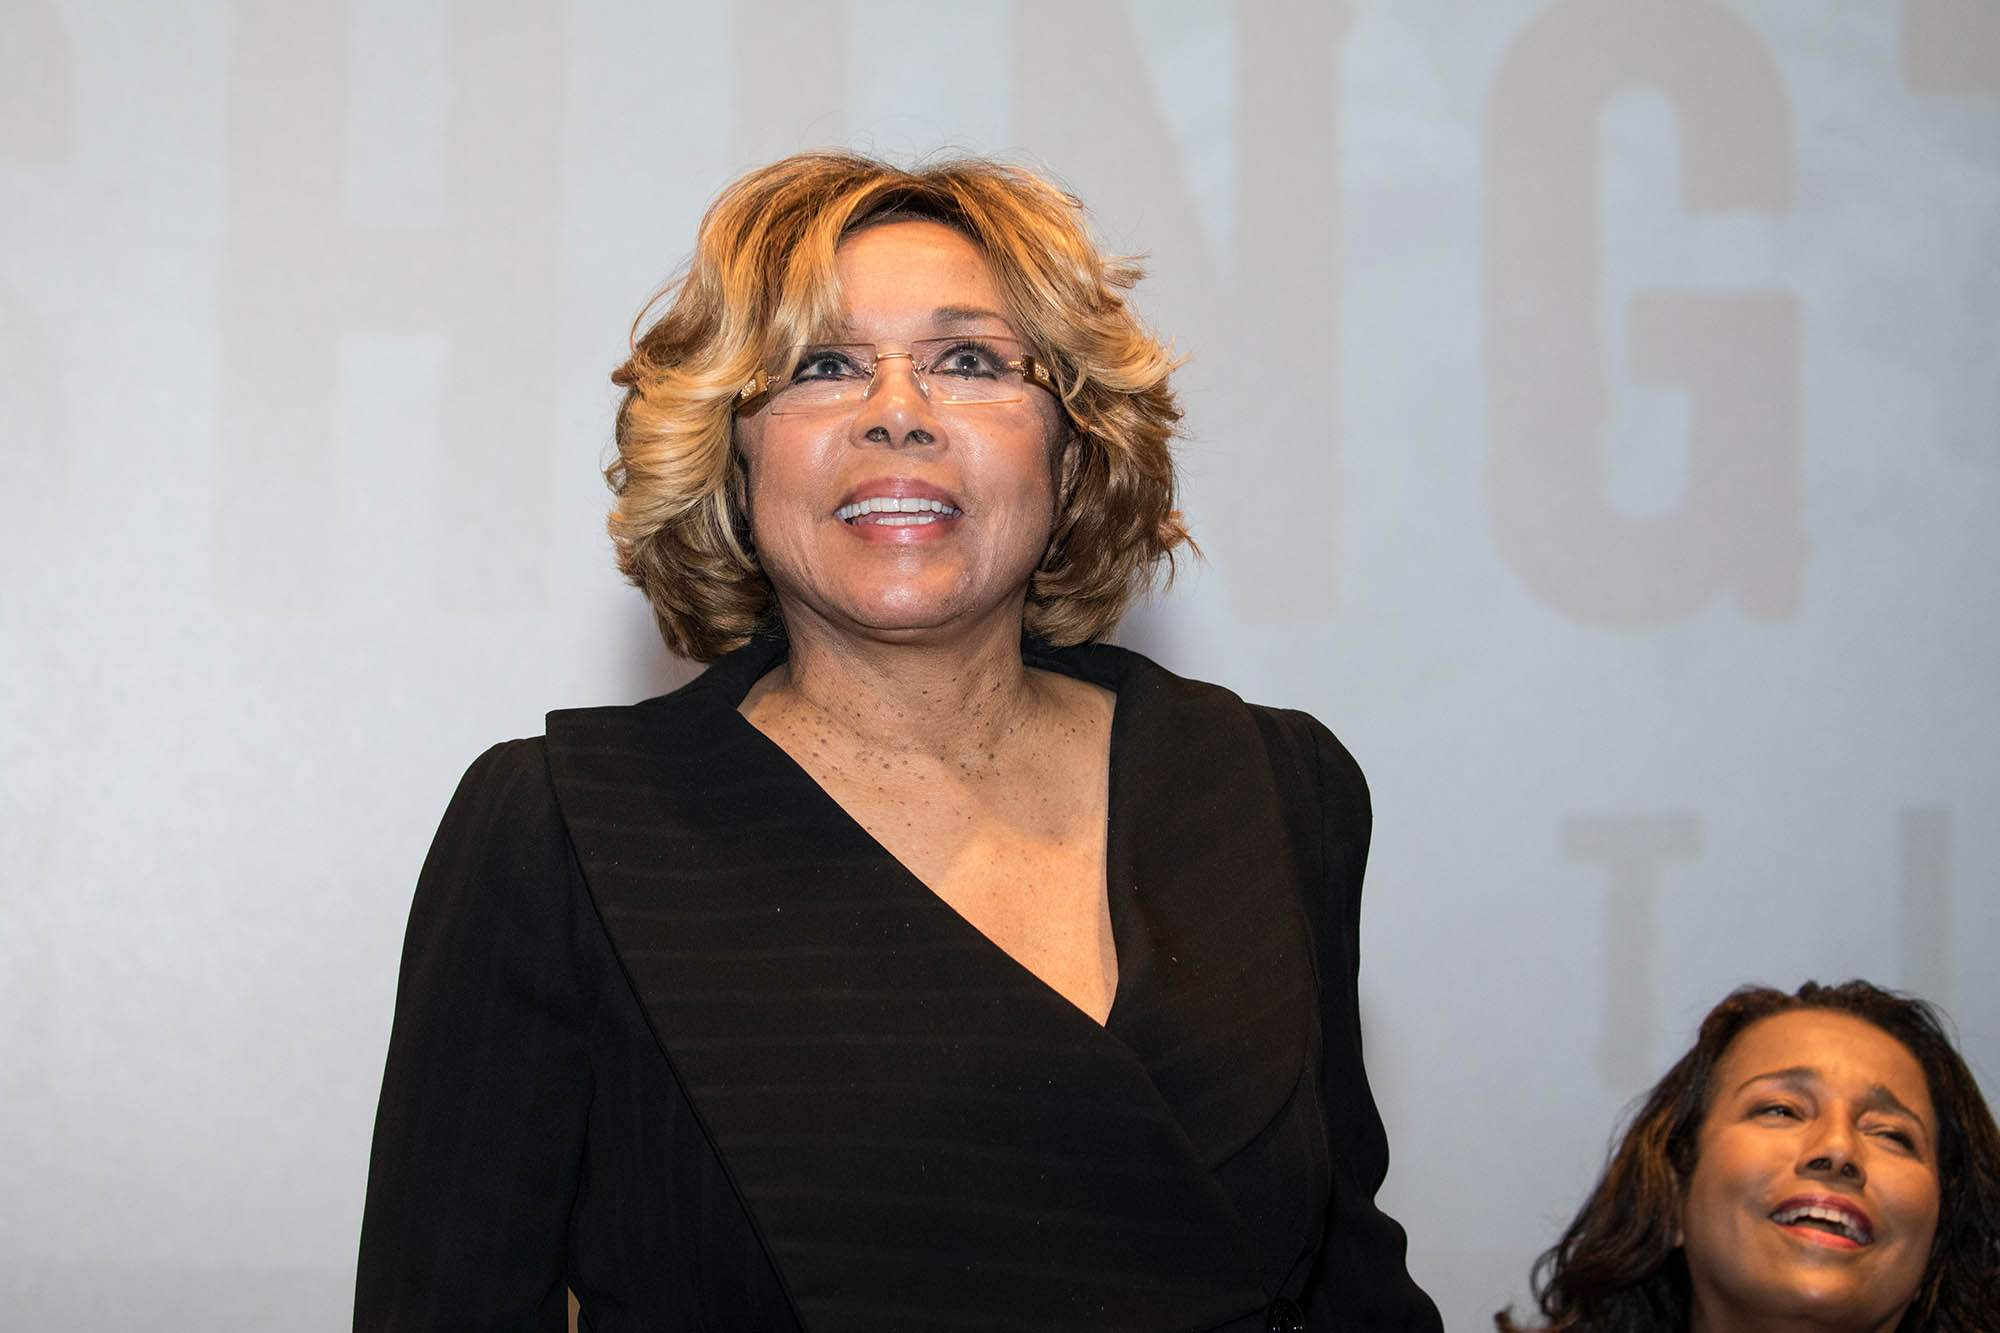 Durango Colorado Diahann Carroll reflects on a career of firsts on stage and screen News 60x60 image